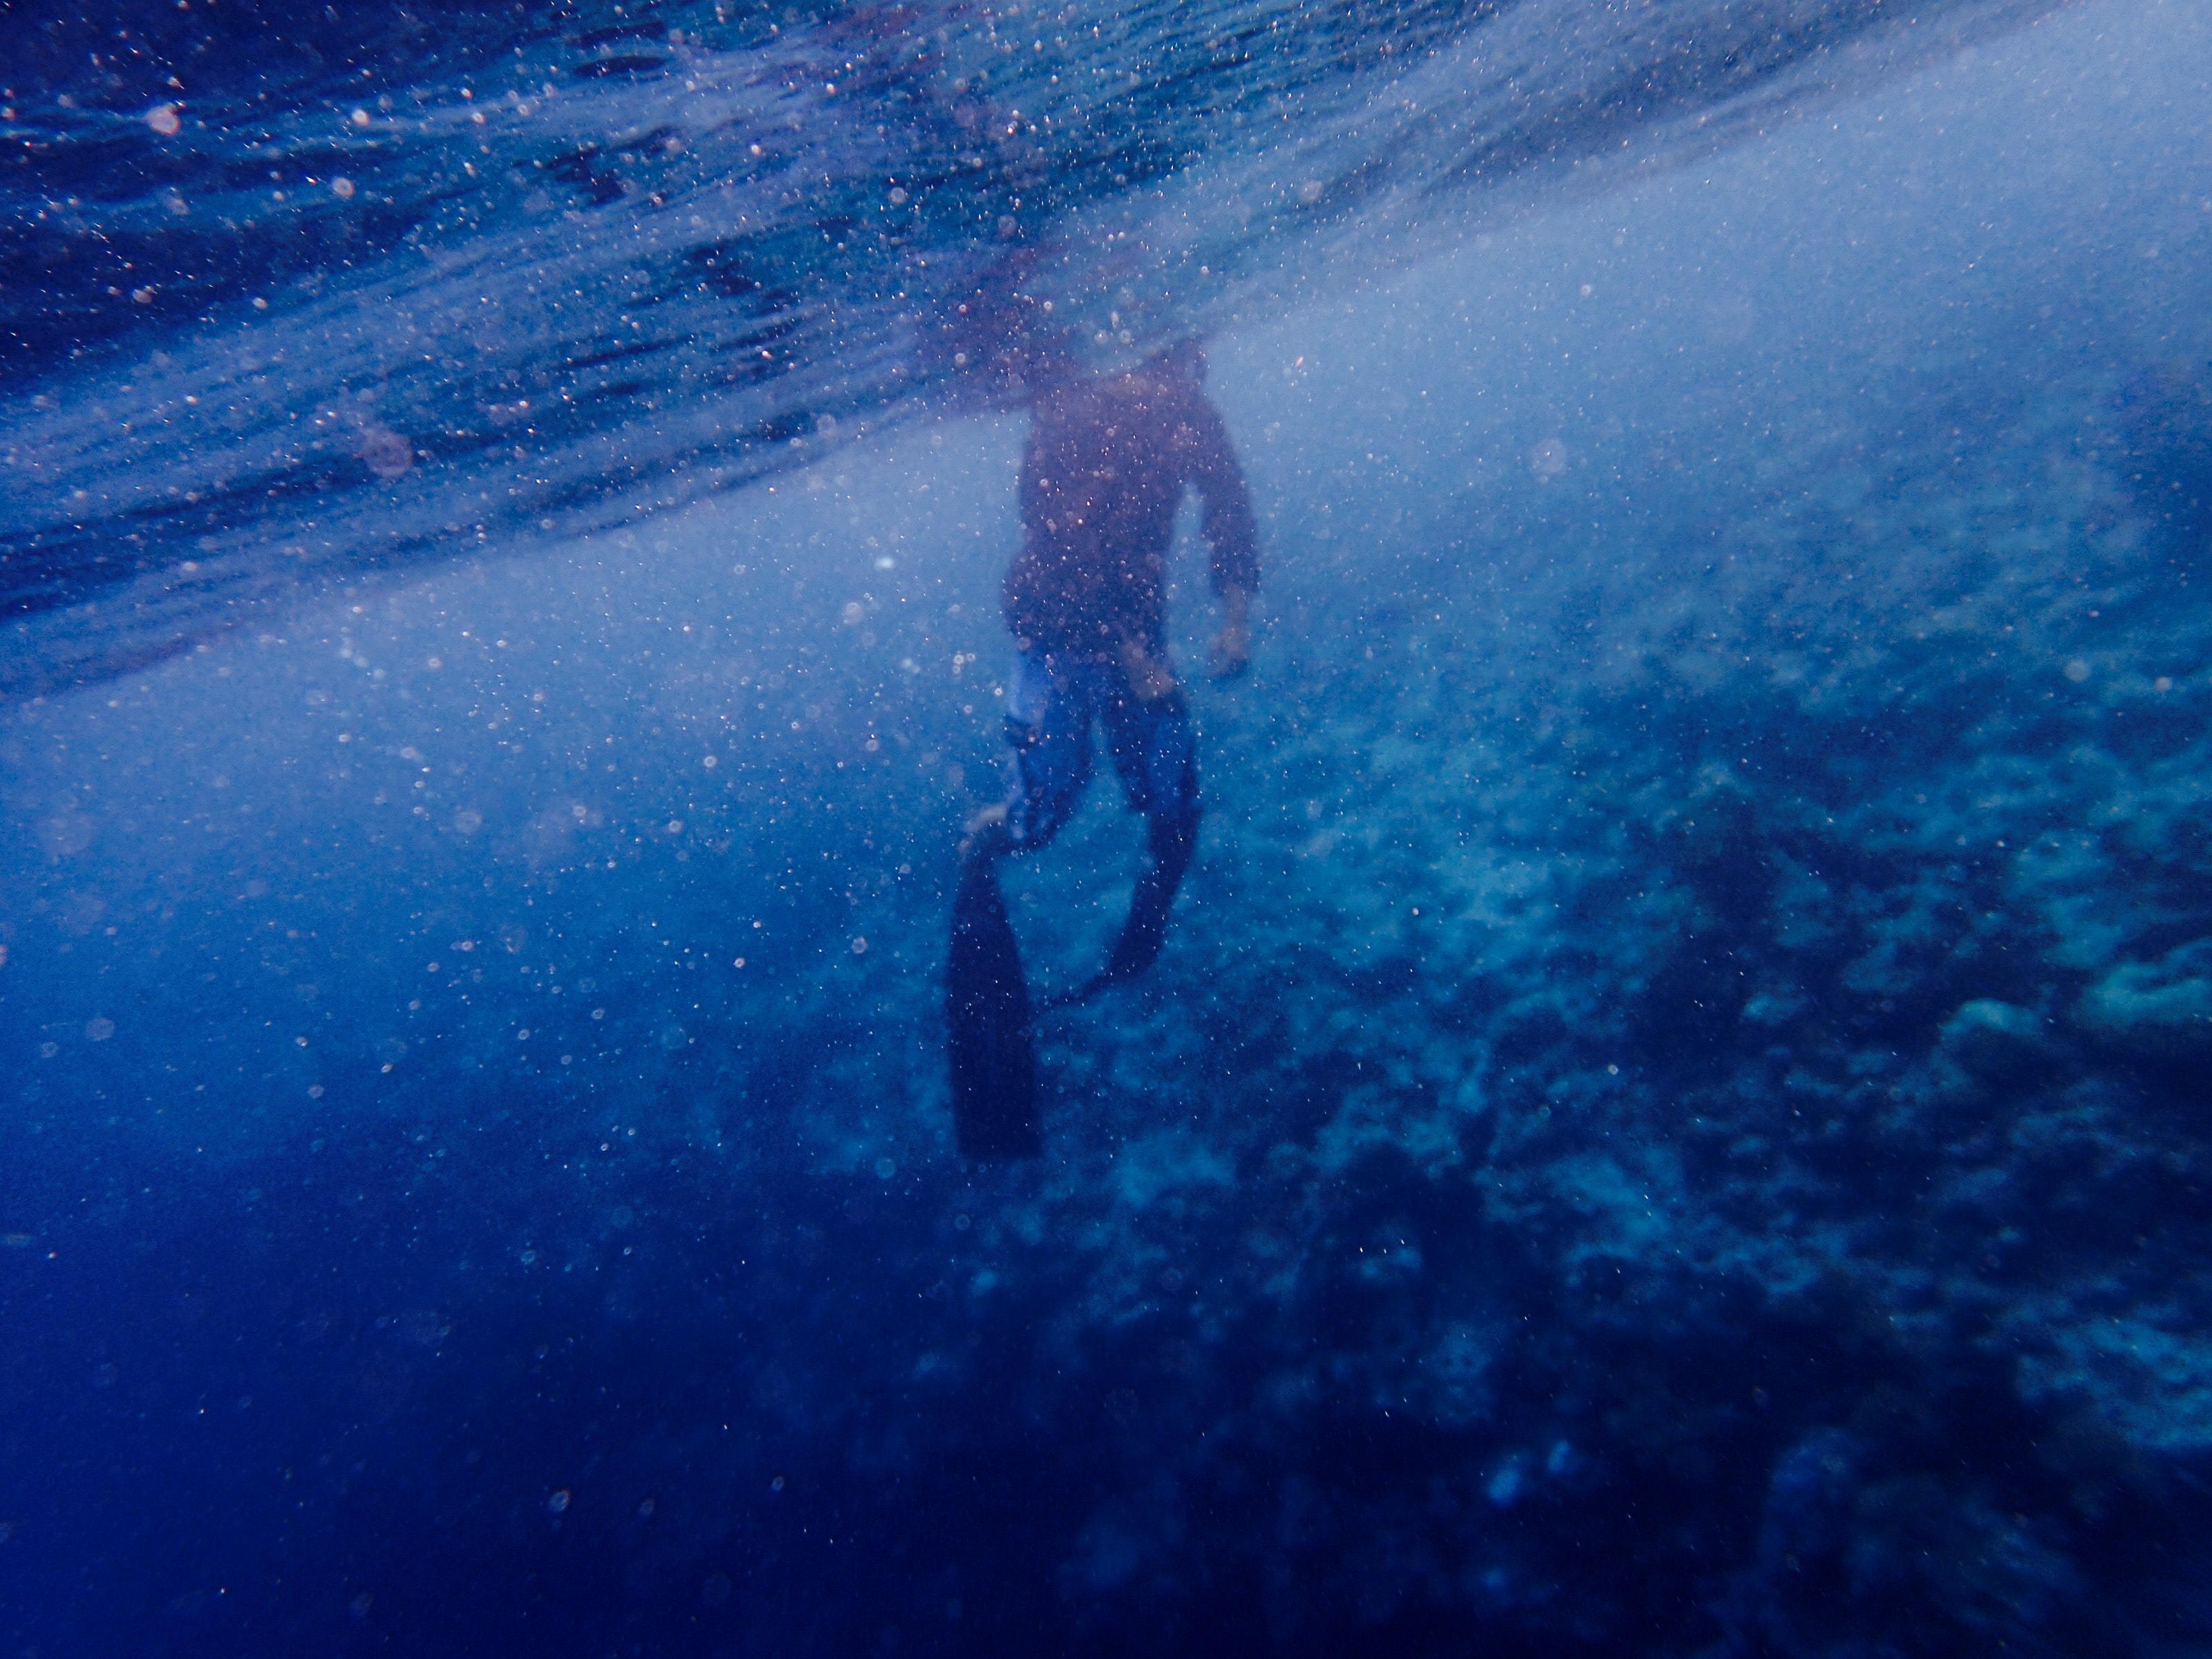 under water photography of person diving